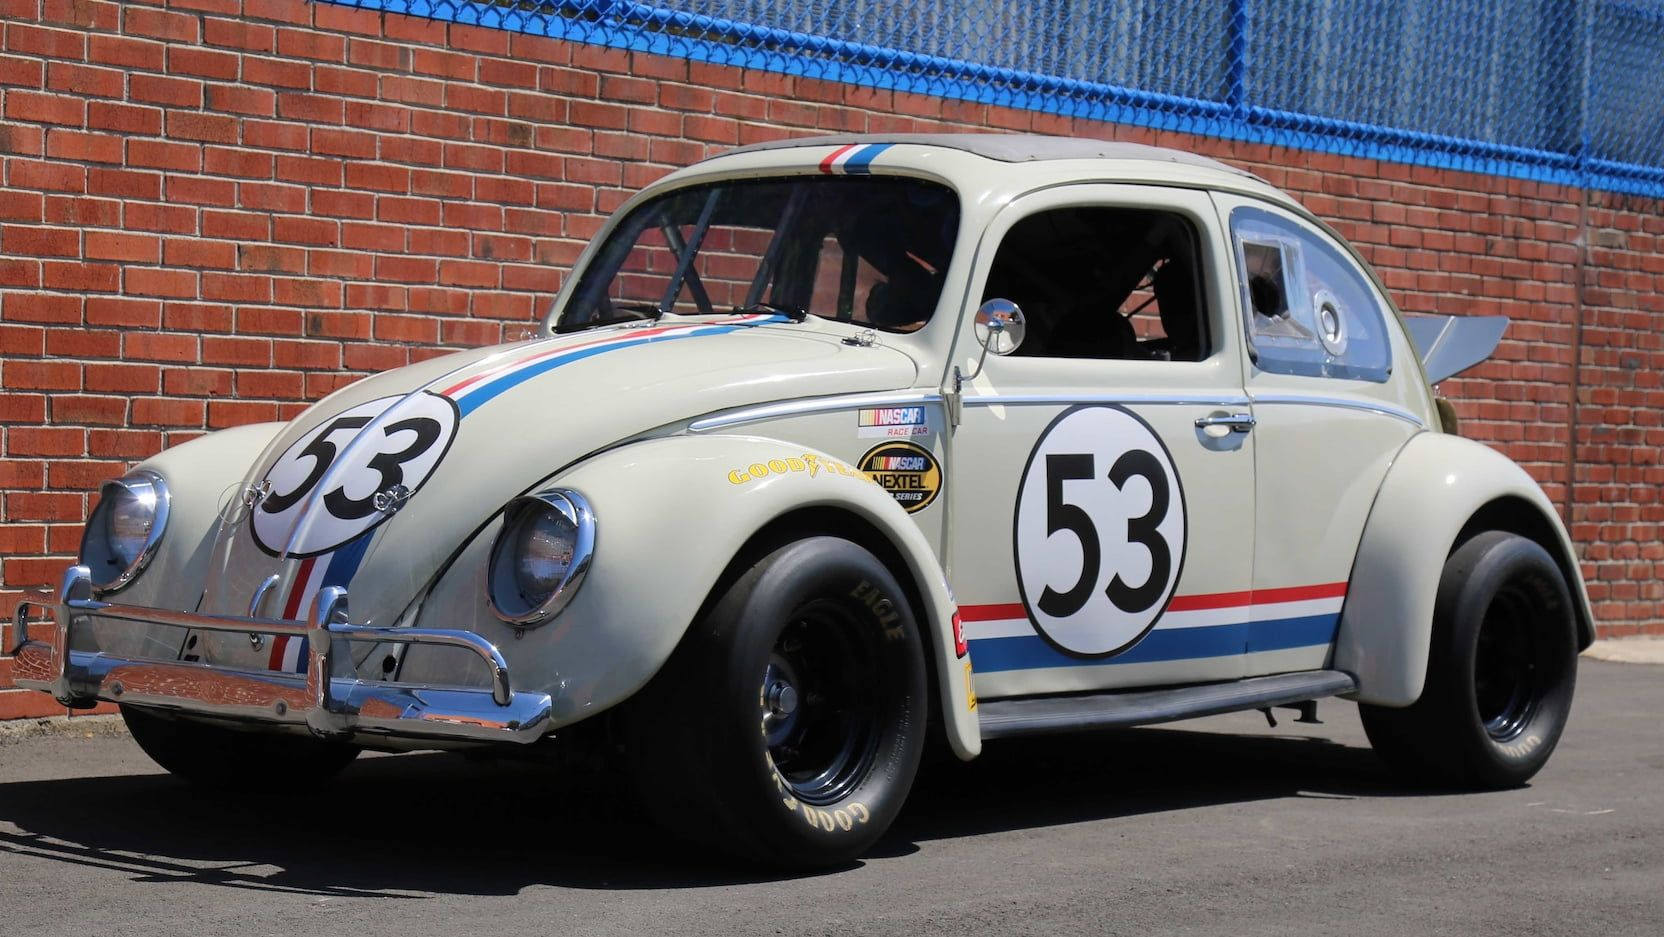 Auction Lot R225 Monterey Ca 2018 2 Of Nascar Herbies Built For The 2005 Movie Herbie Fully Loaded 2300cc Engine W Volkswagen Beetle Volkswagen Vw Cars